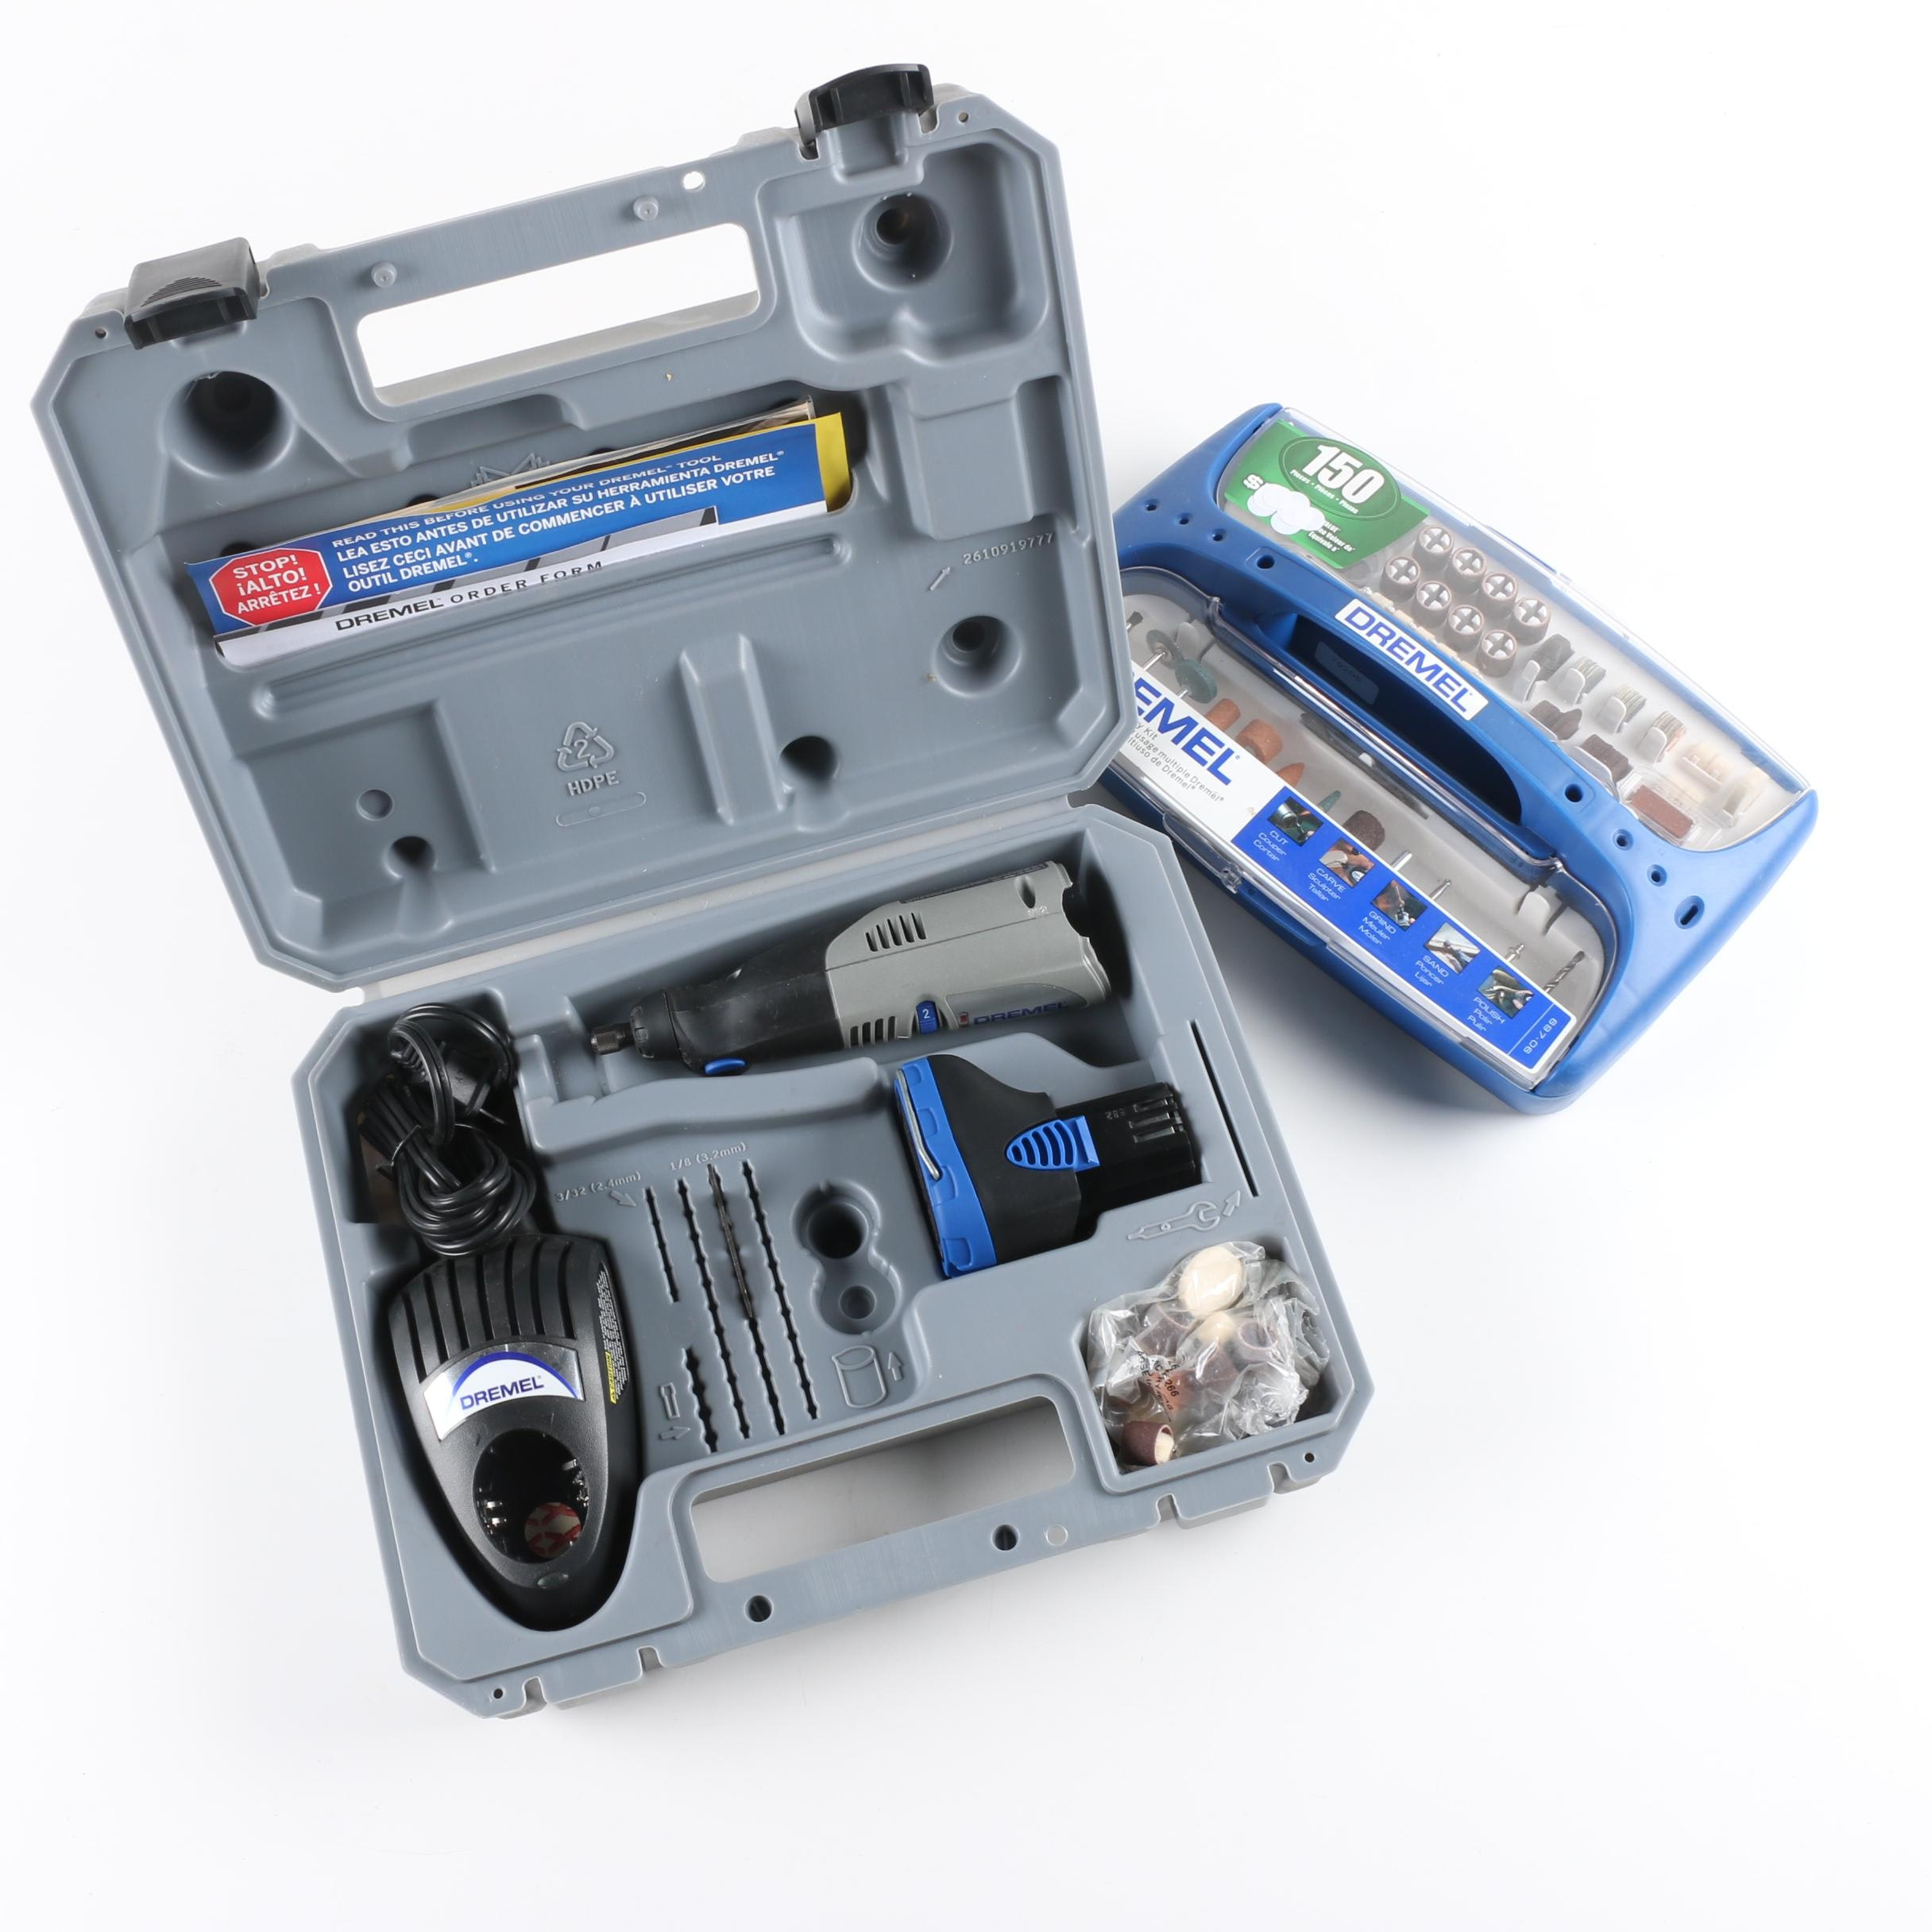 Dremel Rotary Tool and Attachments